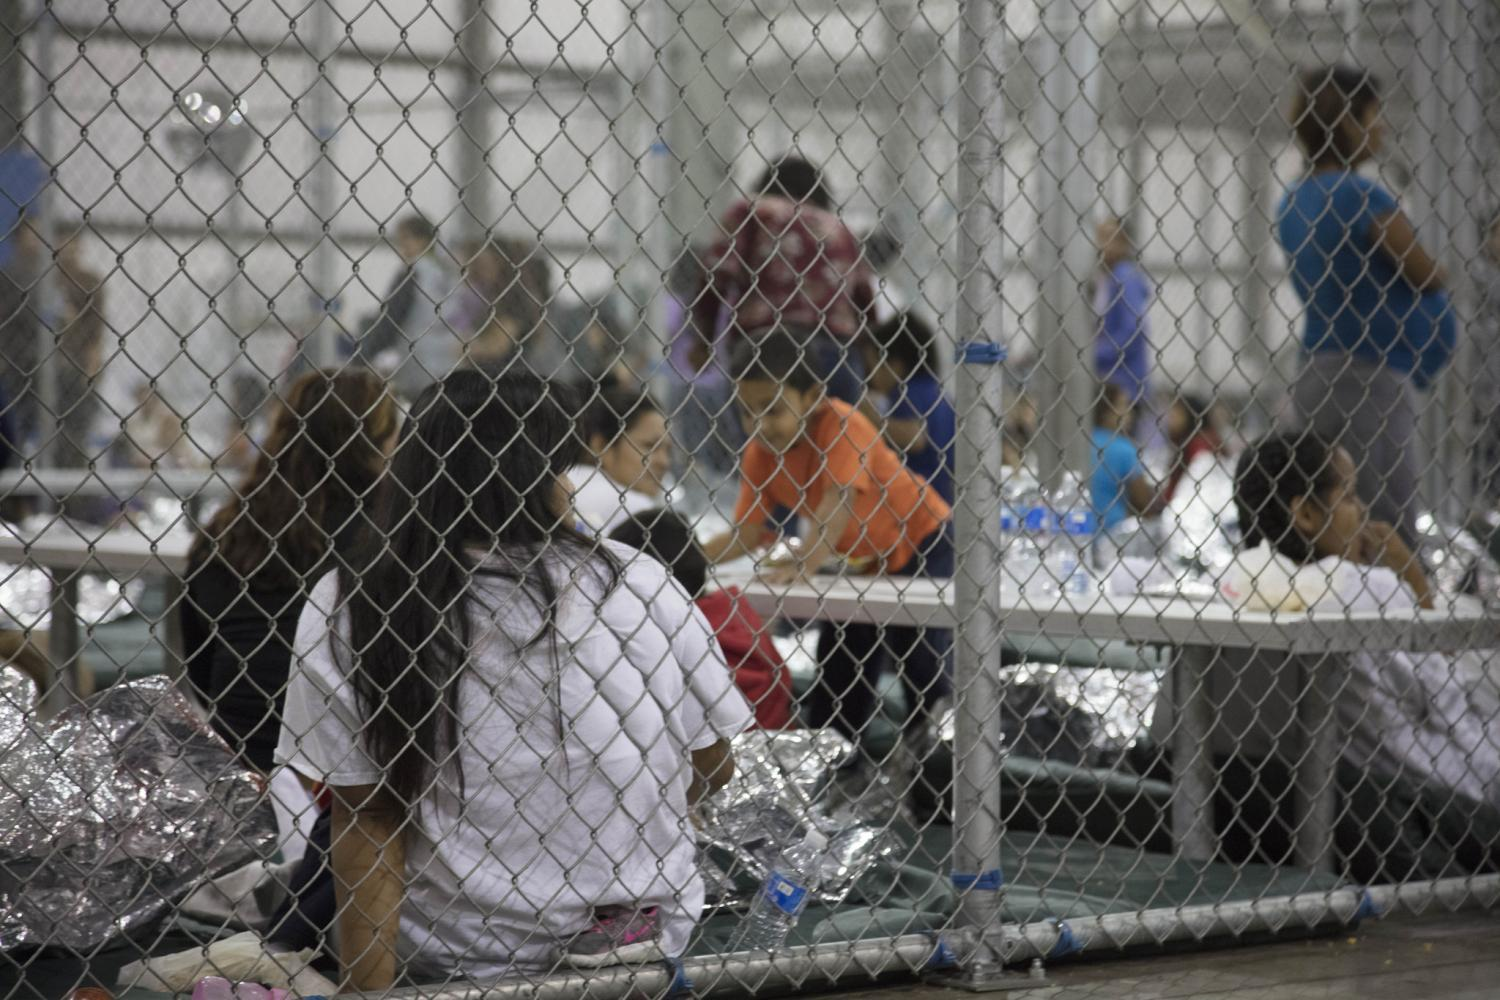 migrants at the Central Processing Center in McAllen, Texas